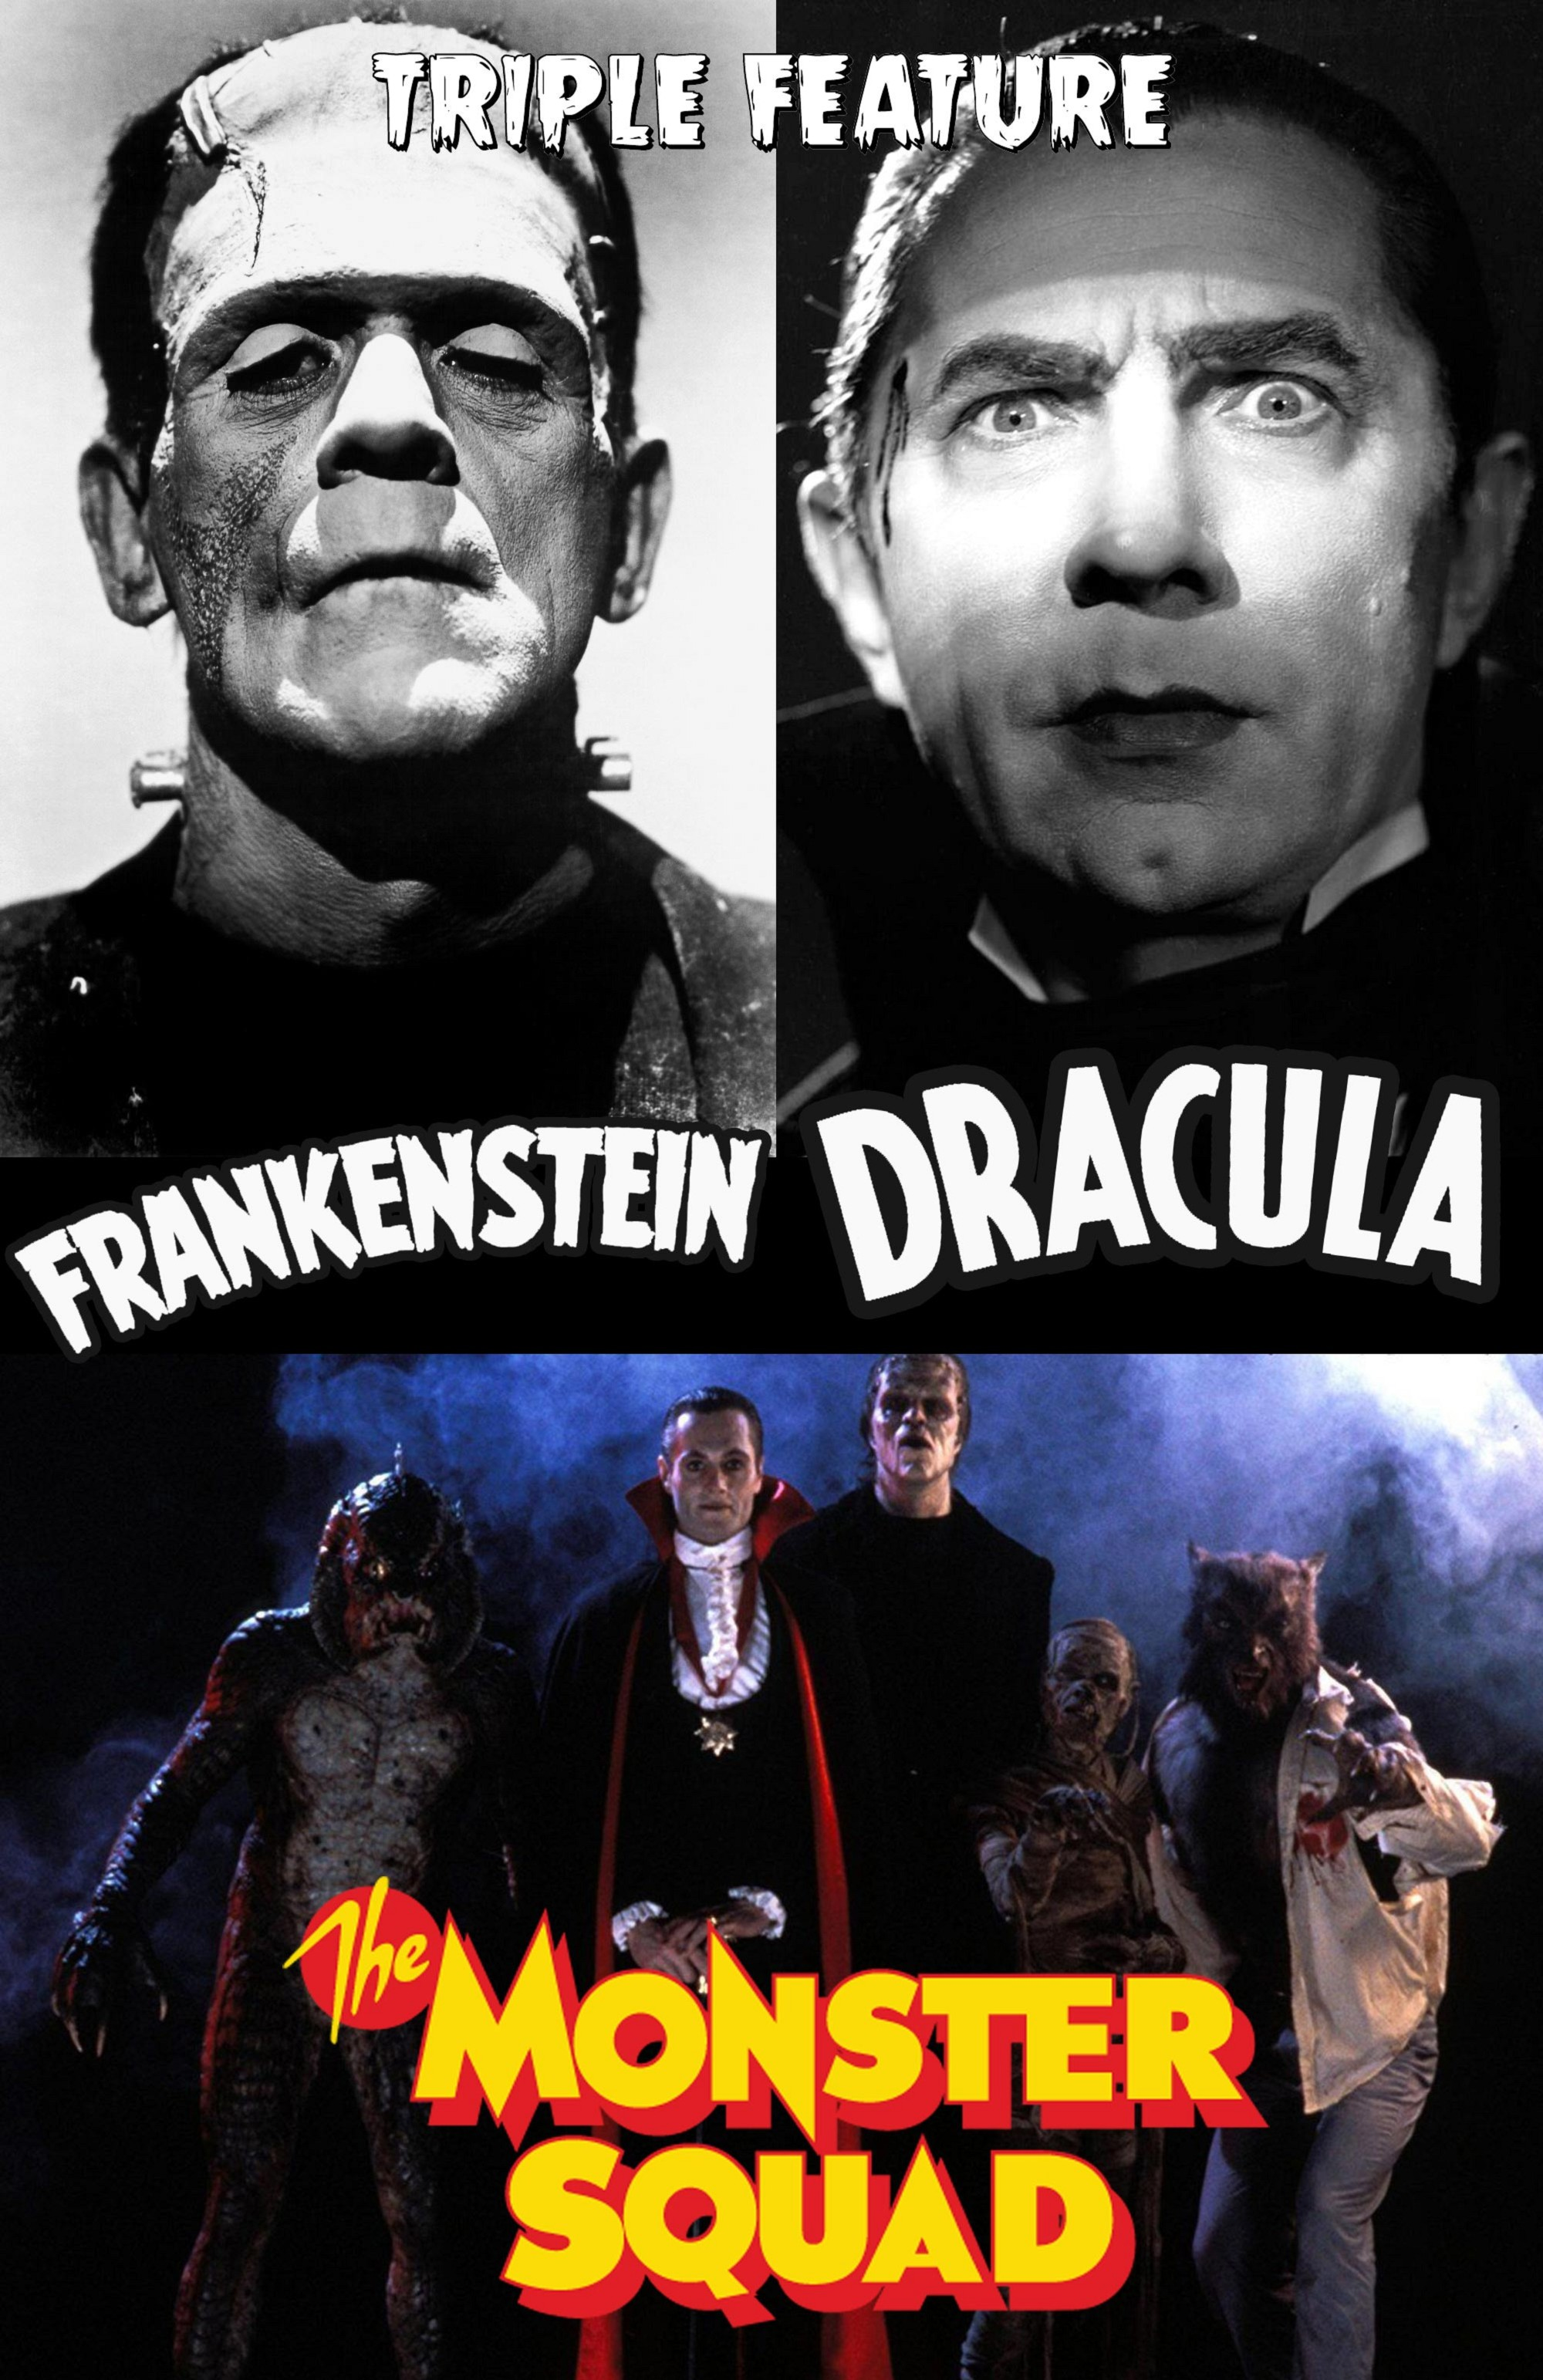 MONSTER TRIPLE FEATURE : FRANKENSTEIN, DRACULA & MONSTER SQUAD